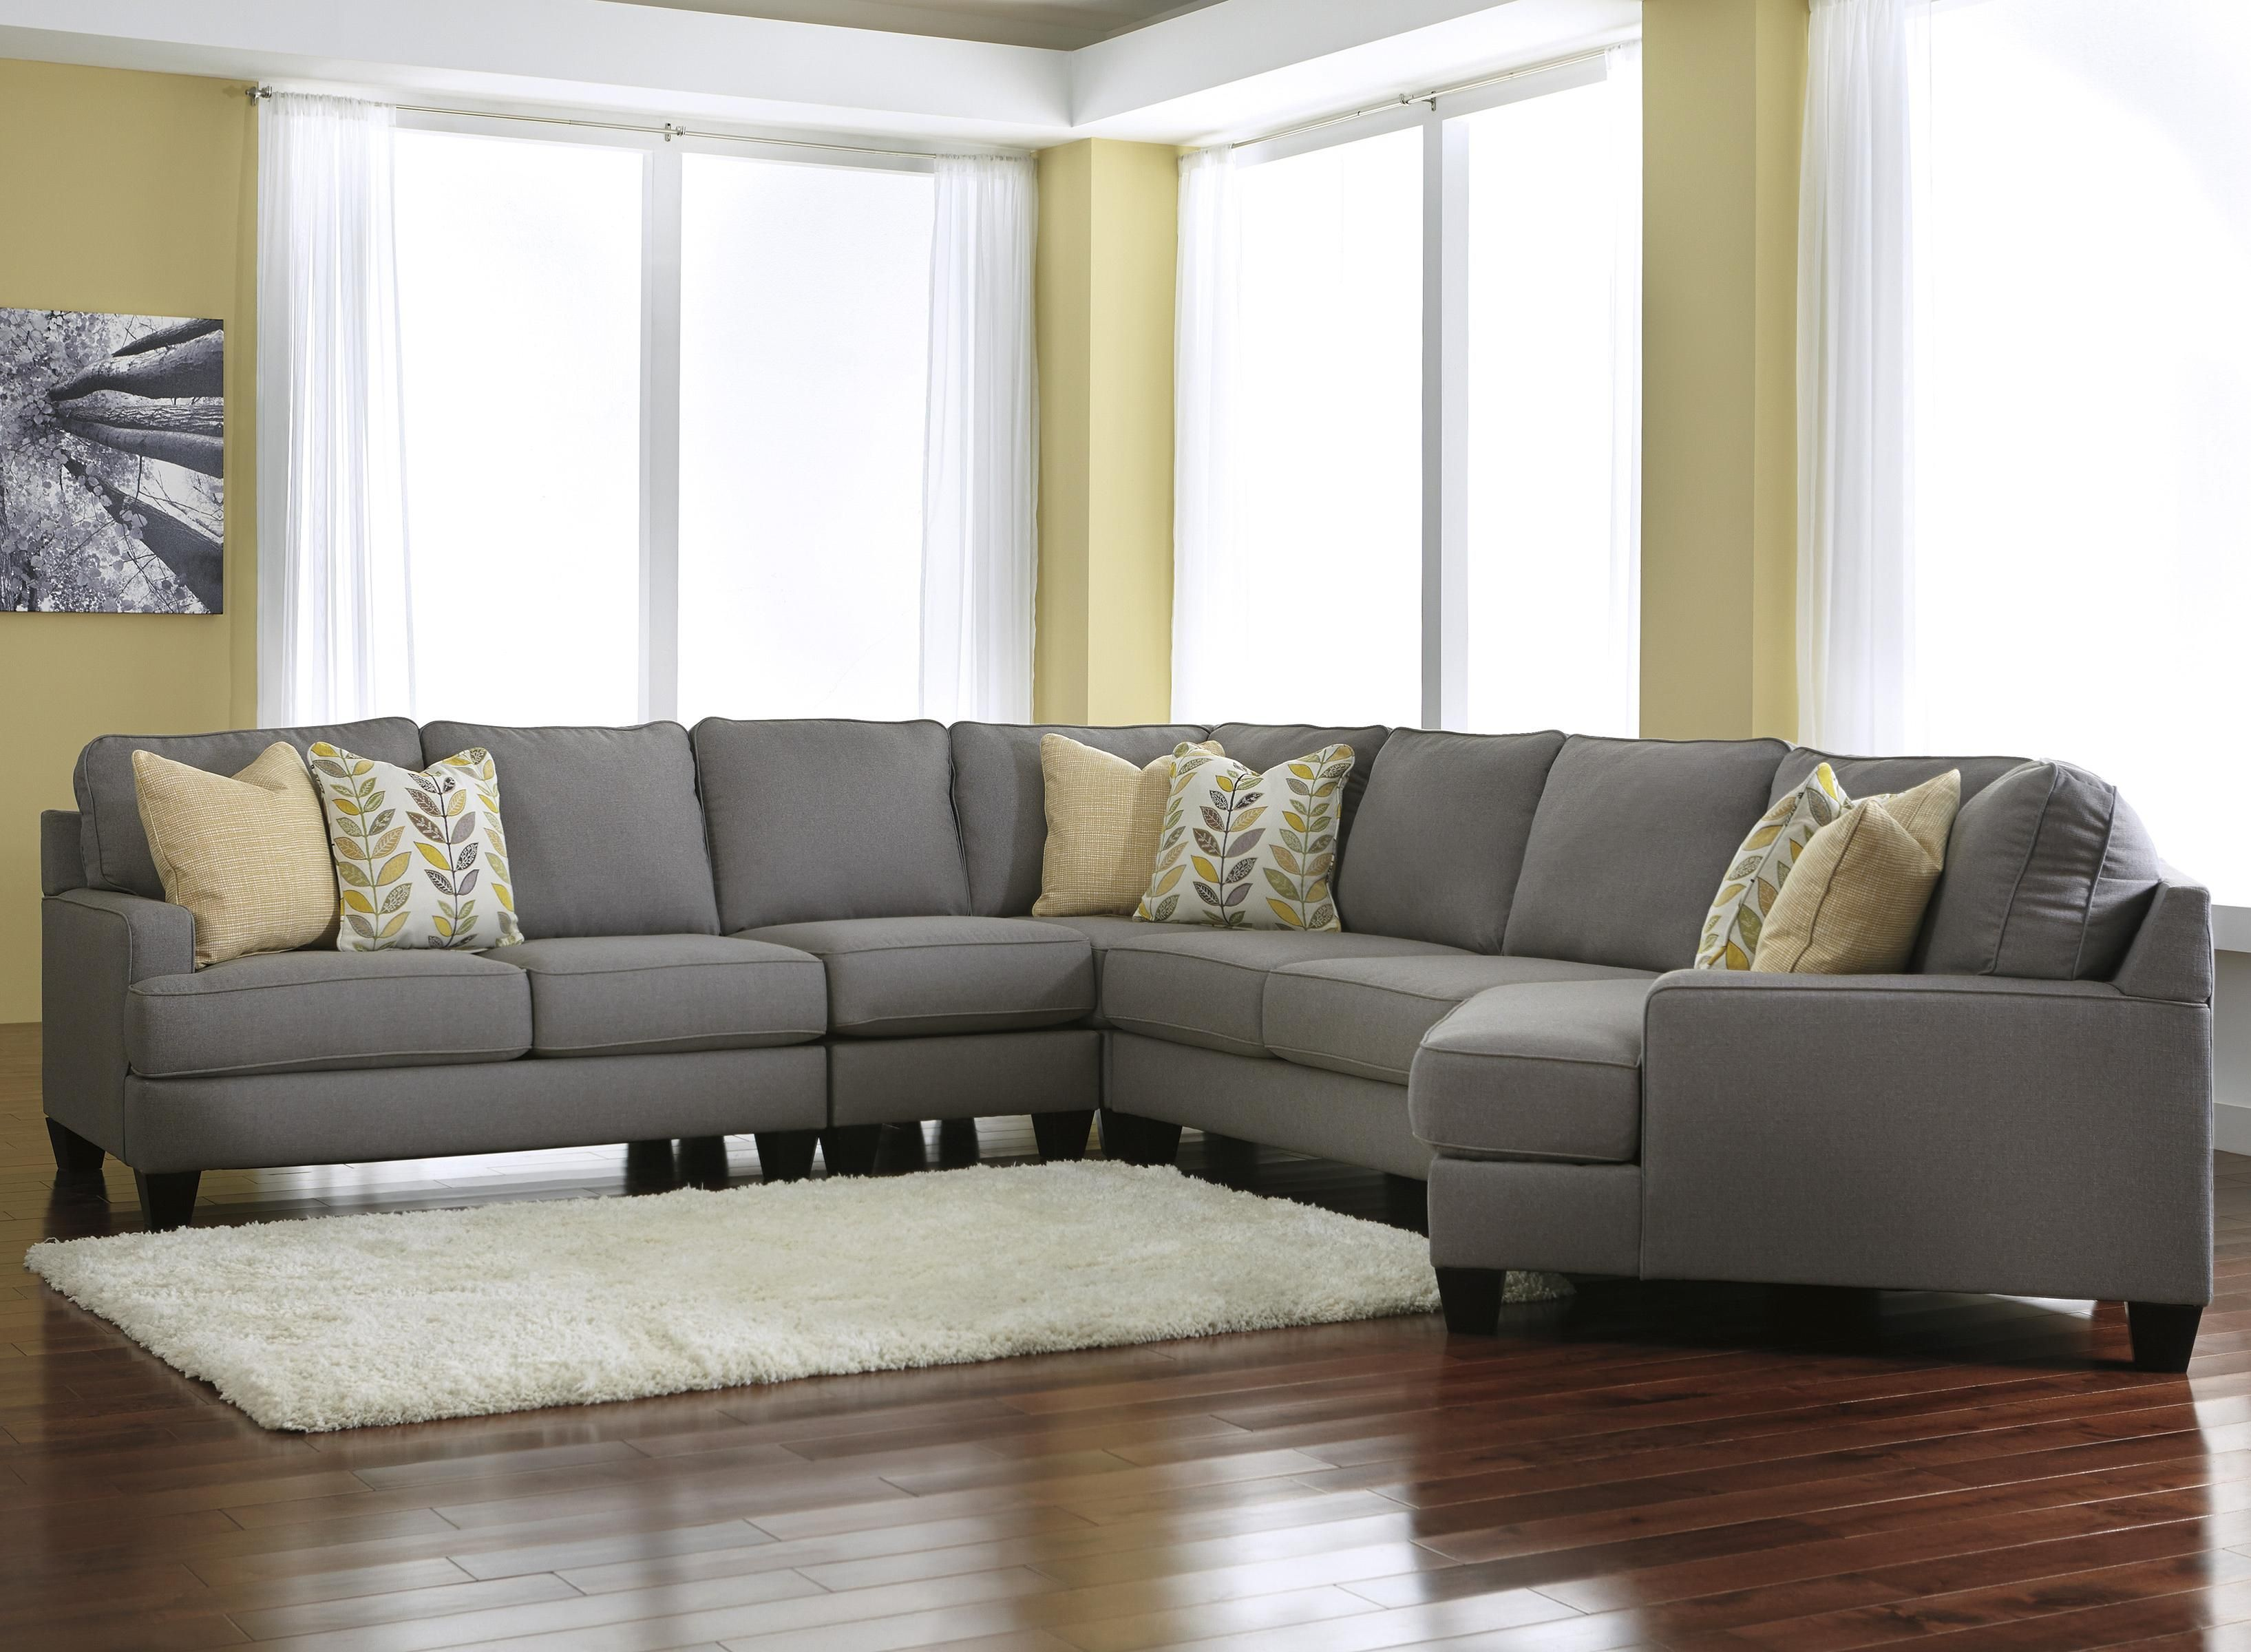 Living Room Designs With Sectionals Adorable Chamberly  Alloy Modern 5Piece Sectional Sofa With Right Cuddler Decorating Design